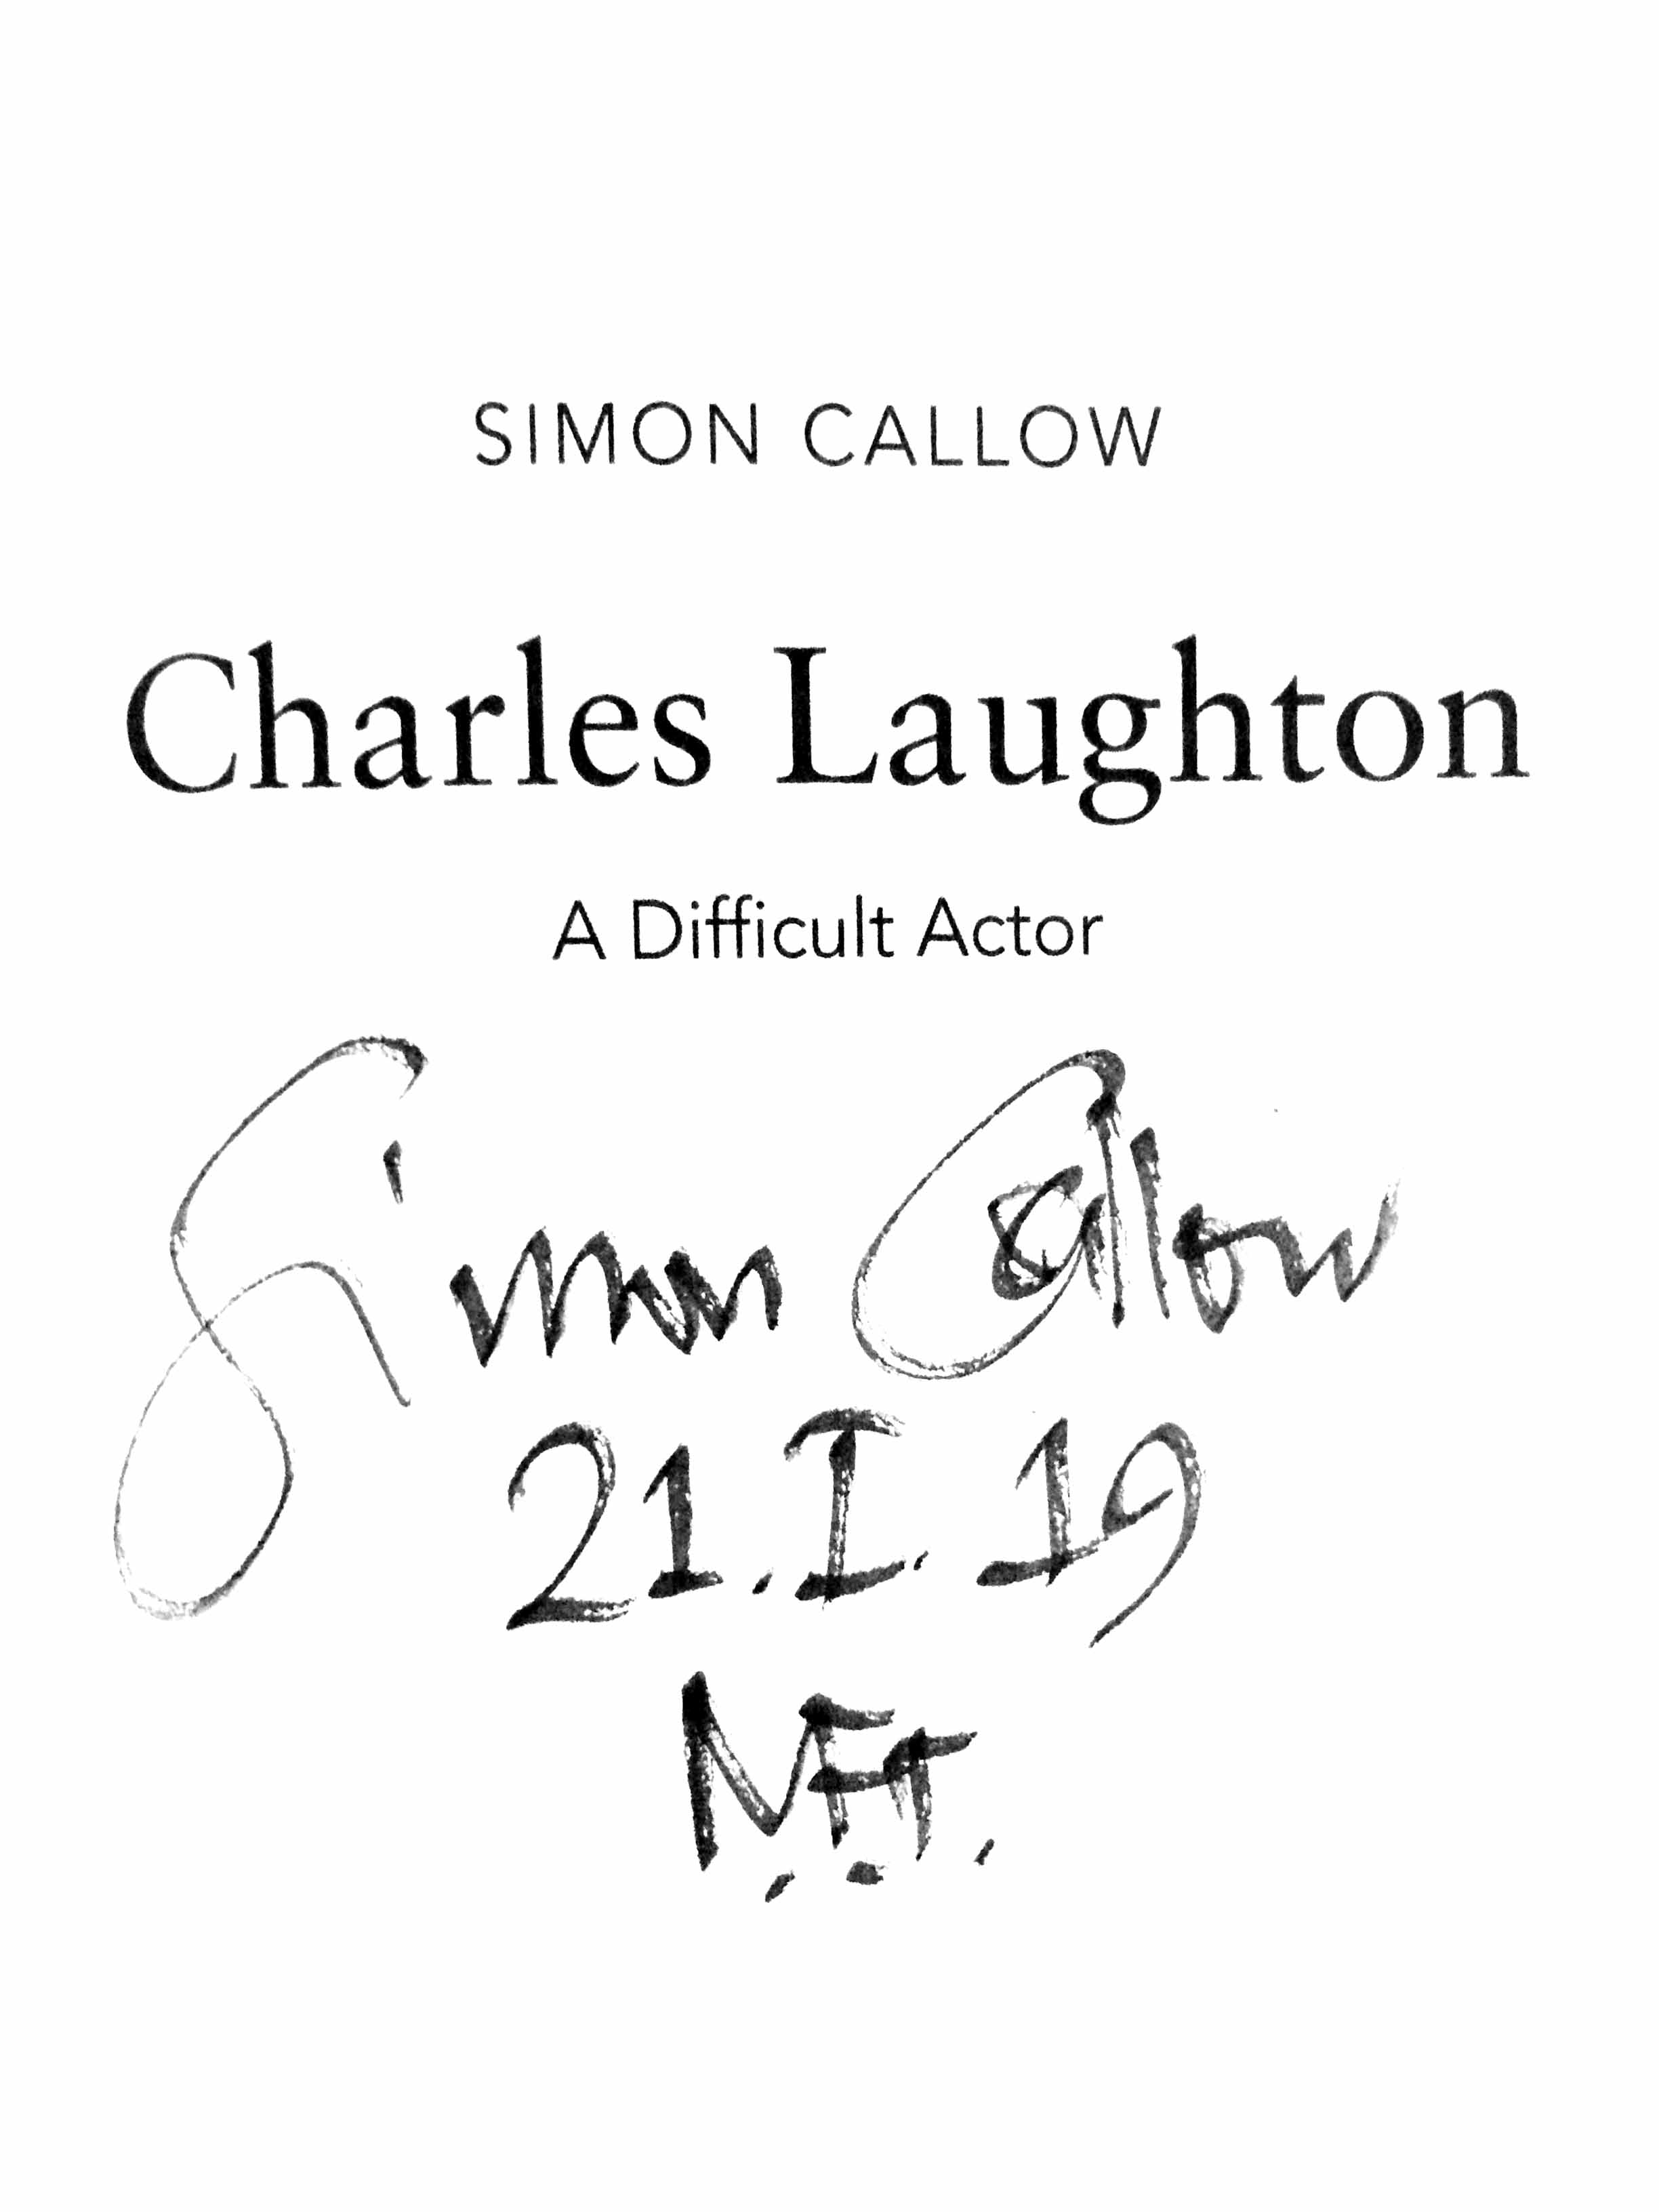 Buy Charles Laughton: A Difficult Actor (Signed by Simon Callow)